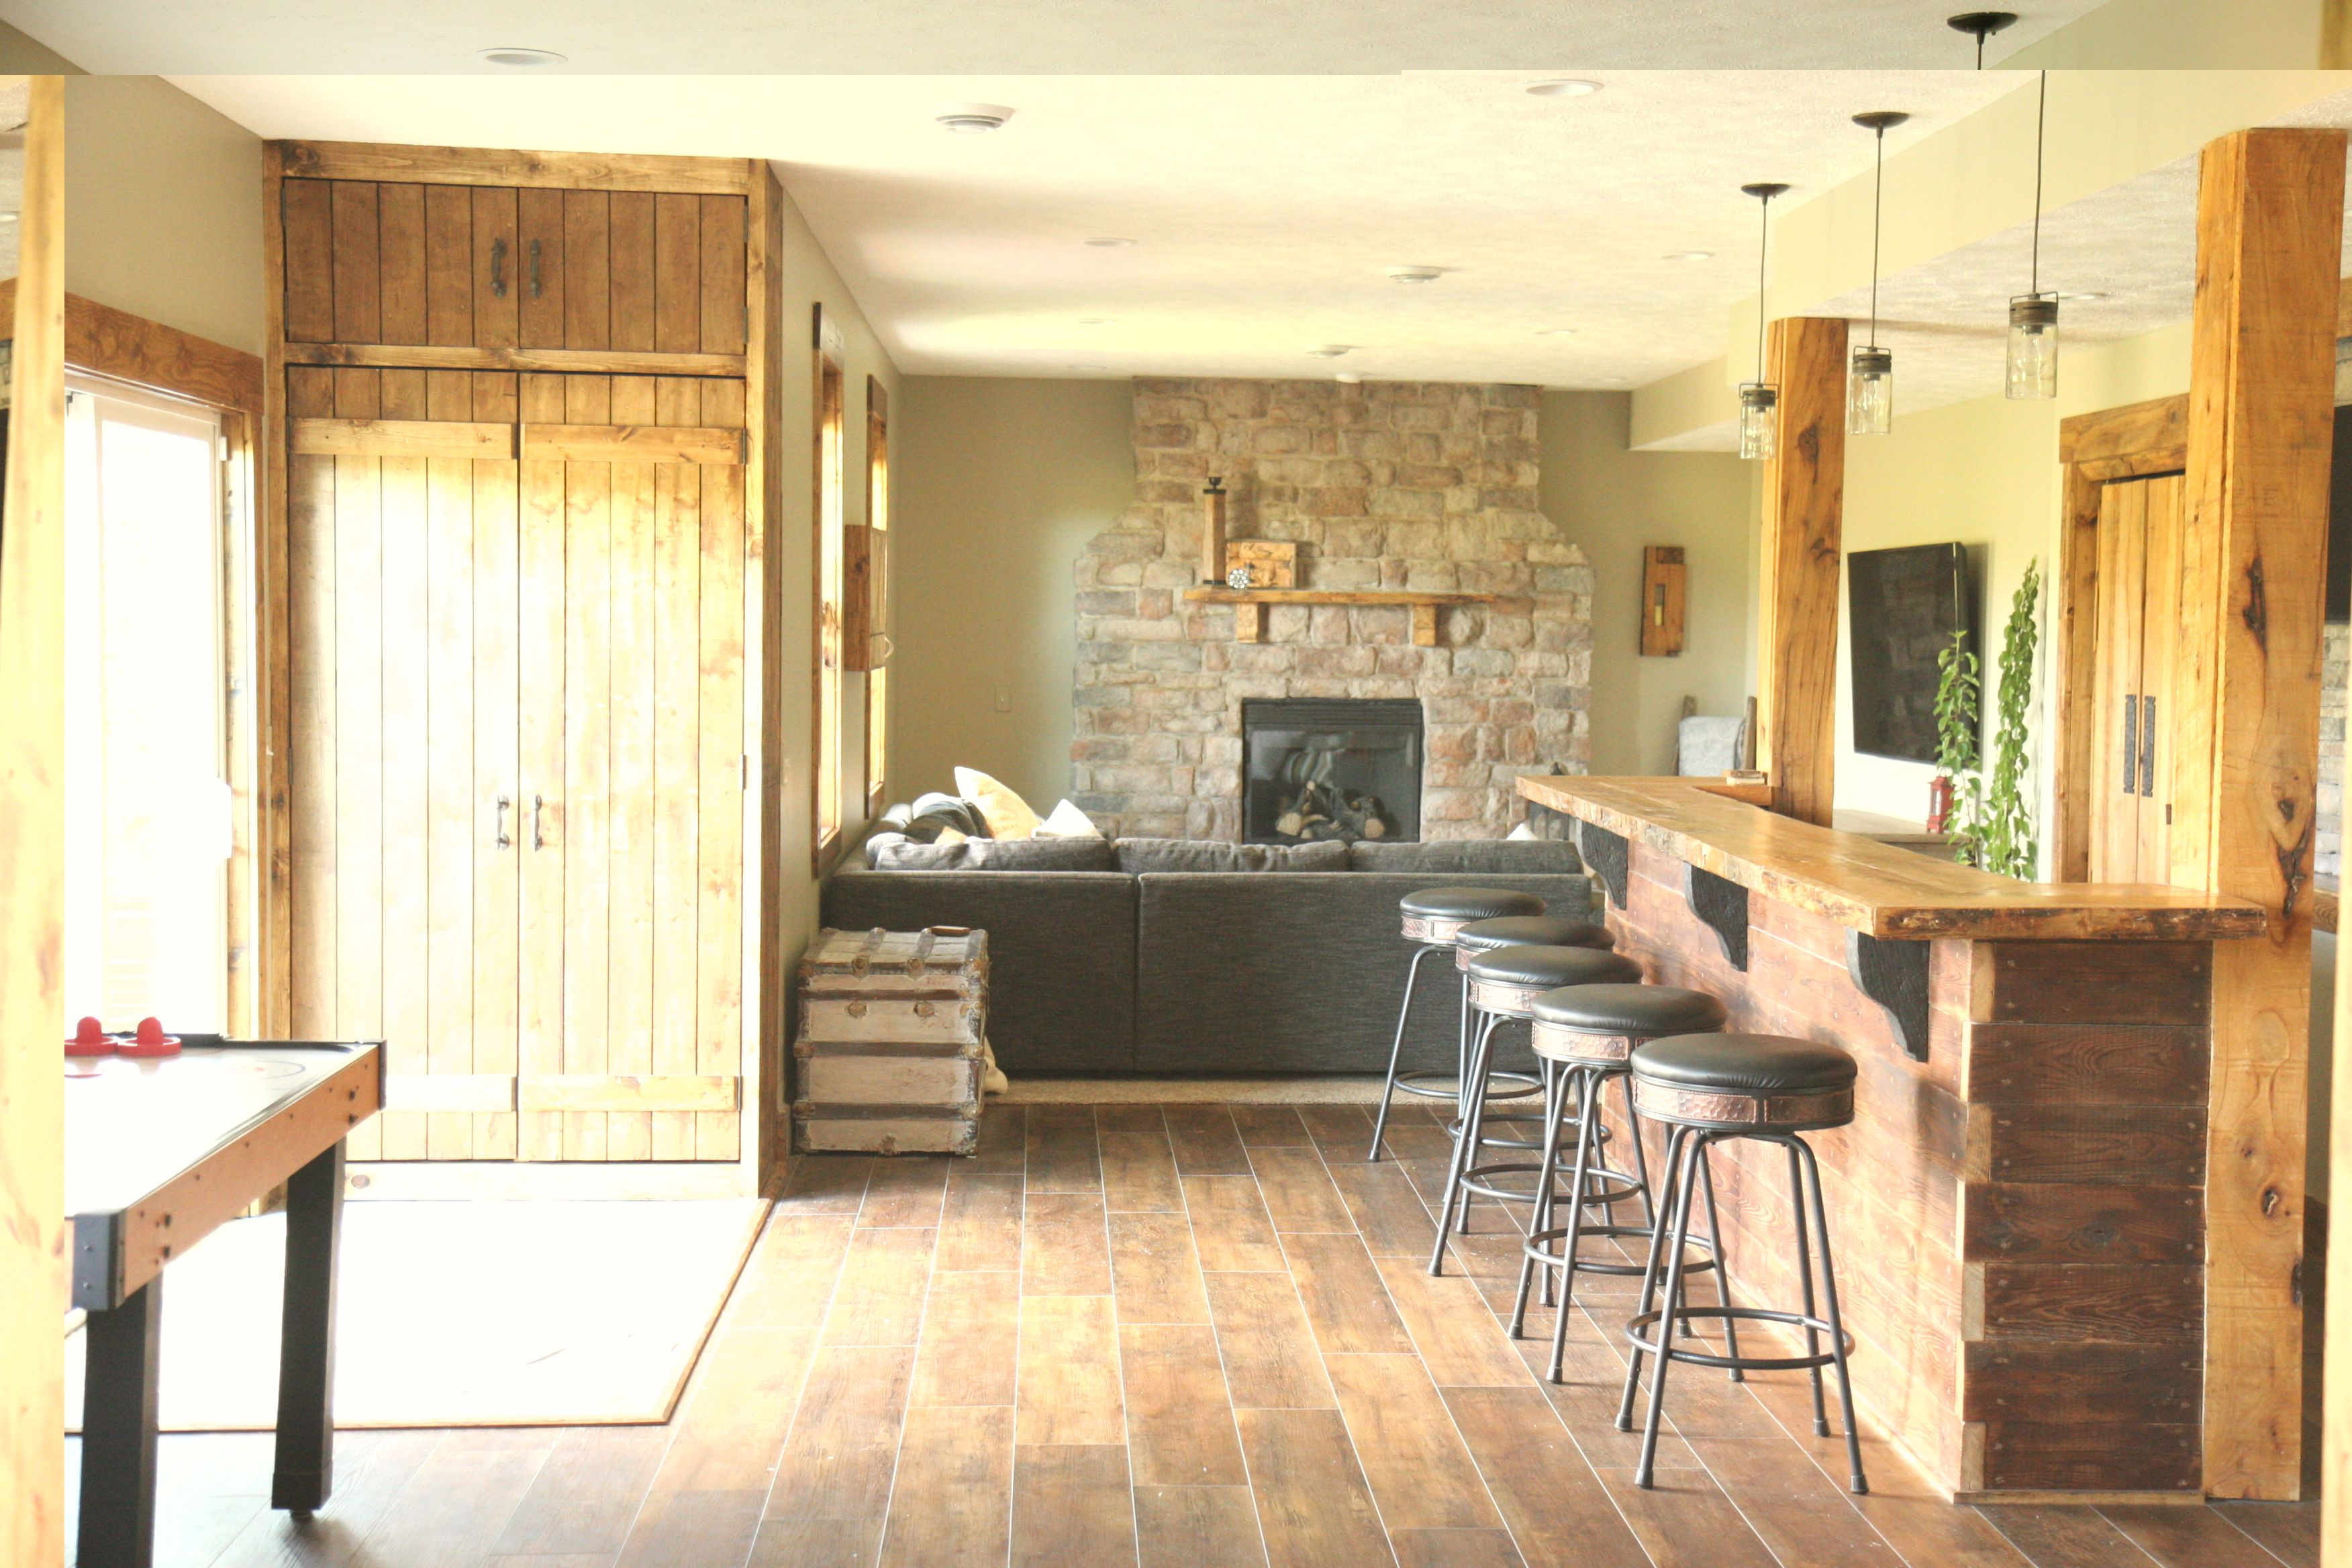 Rustic basement with custom barn wood doors, cabinets, and bar